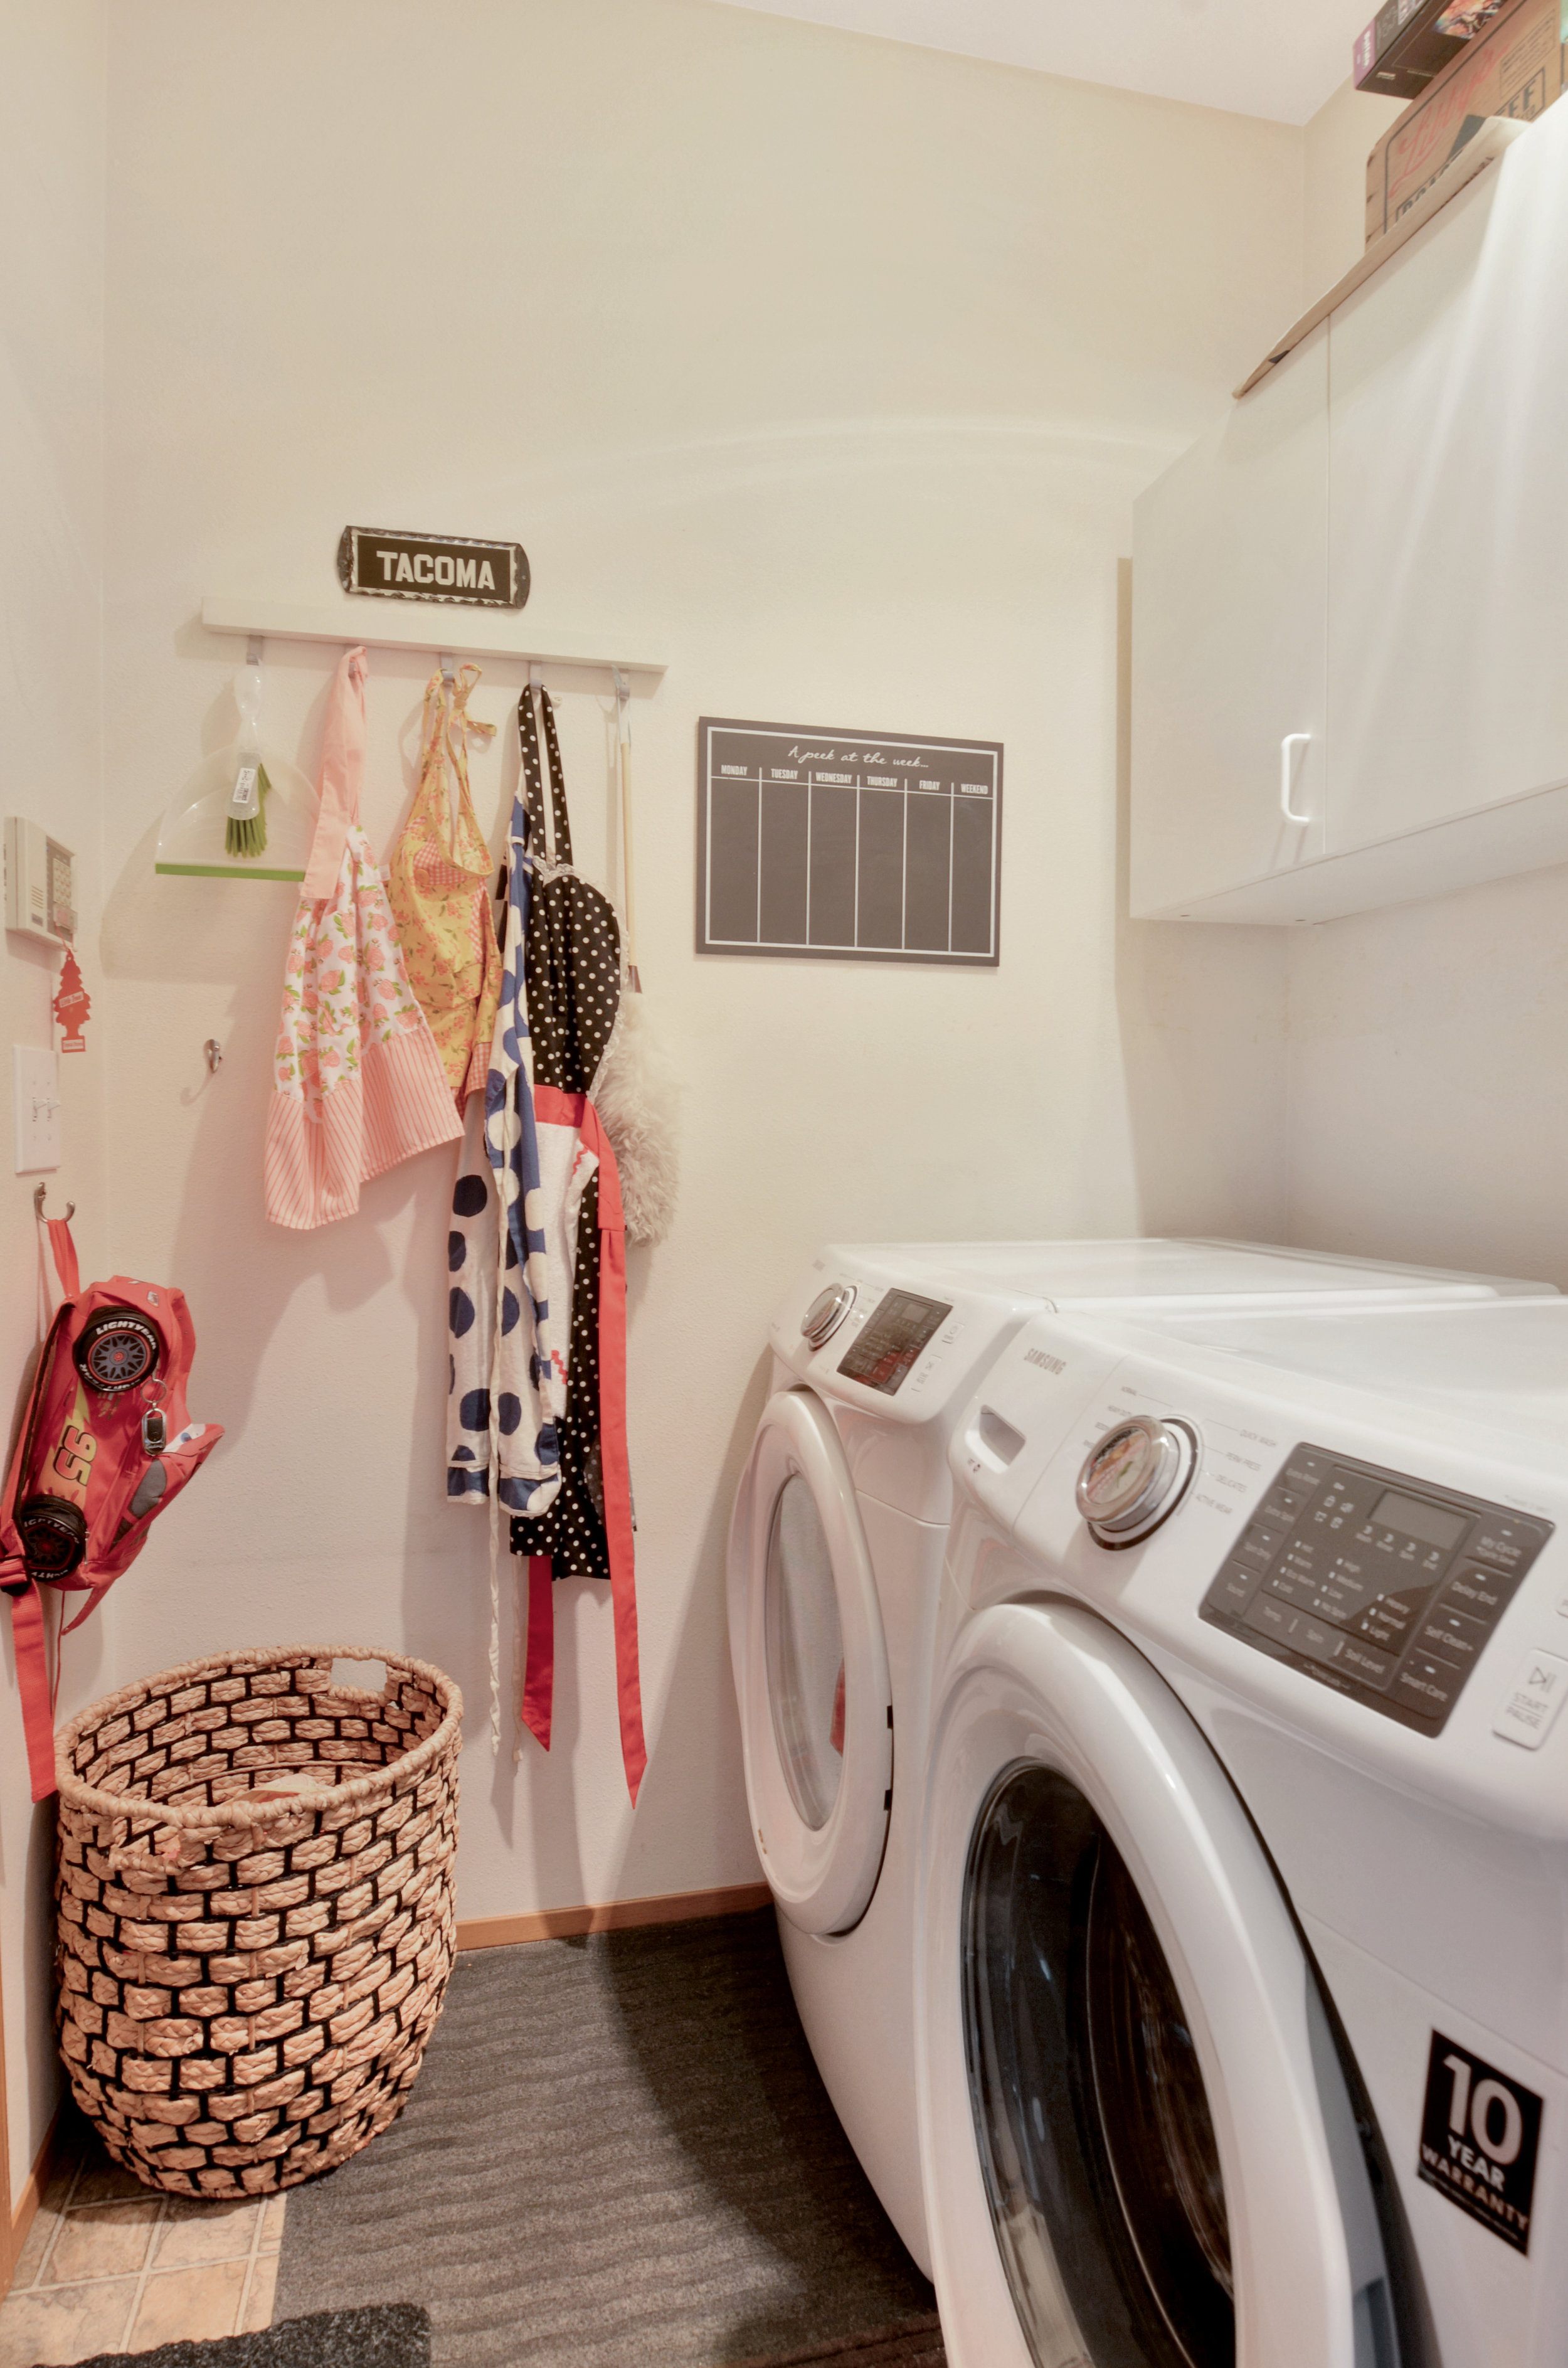 The laundry room is conveniently adjacent to the kitchen and includes cupboards over the washer and dryer. A door on the left leads into the 2 car garage.